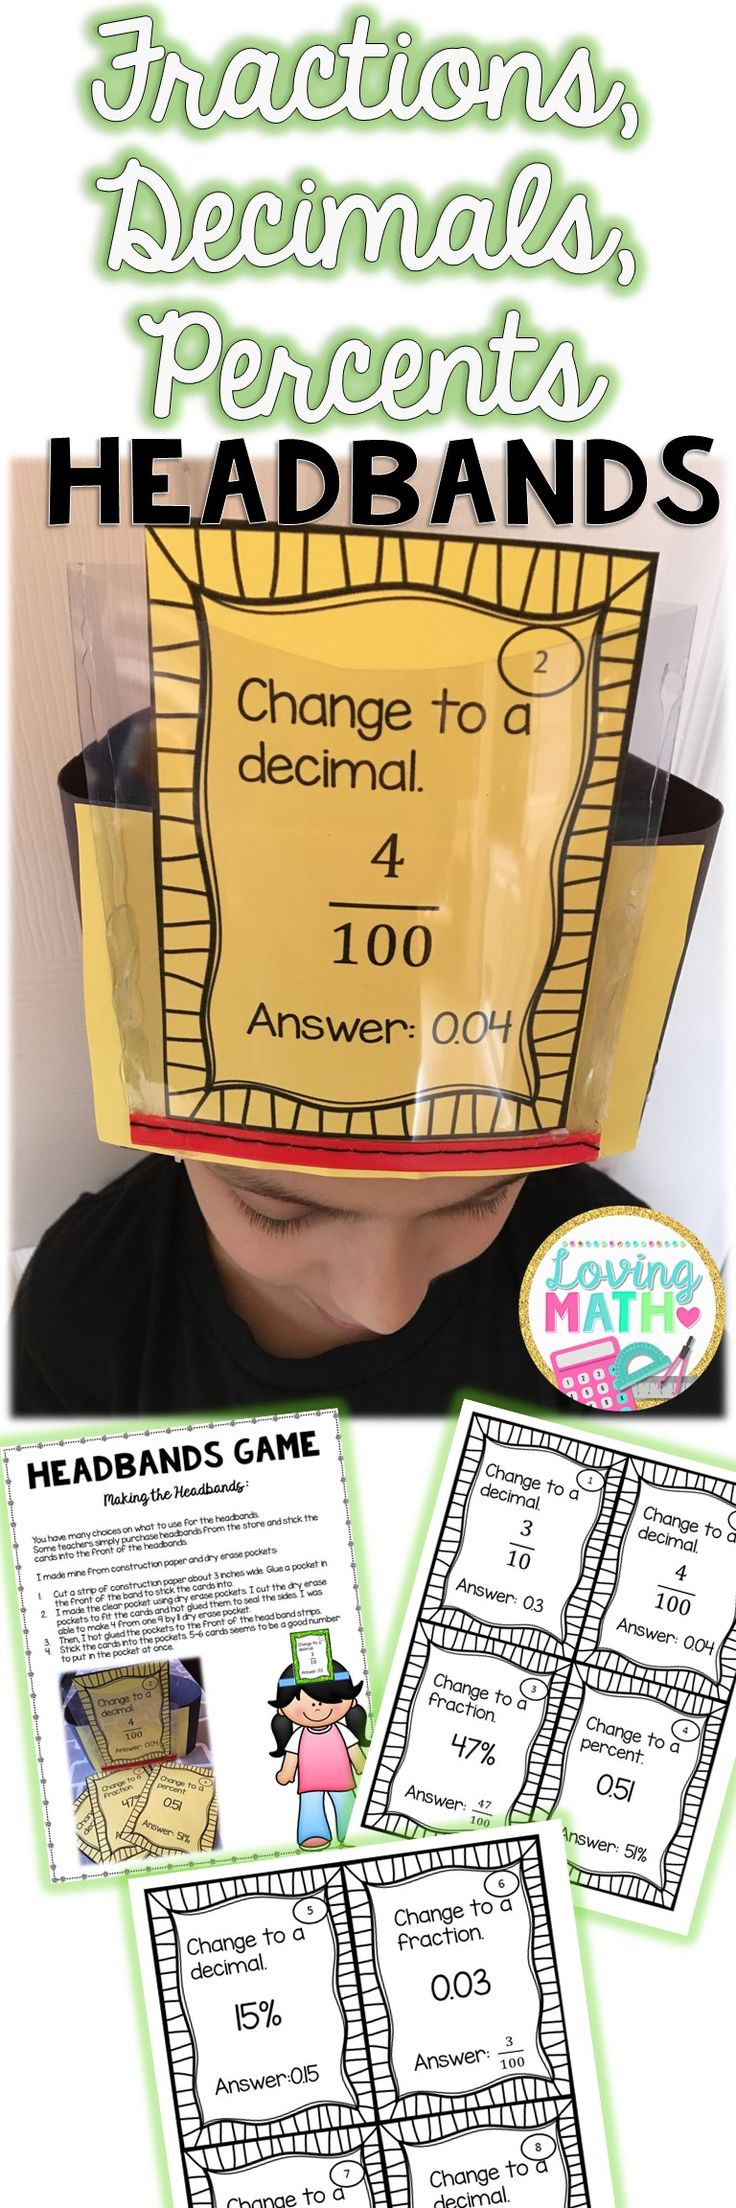 Practice Fractions, Decimals,Percents with this SUPER fun Headbands Game!